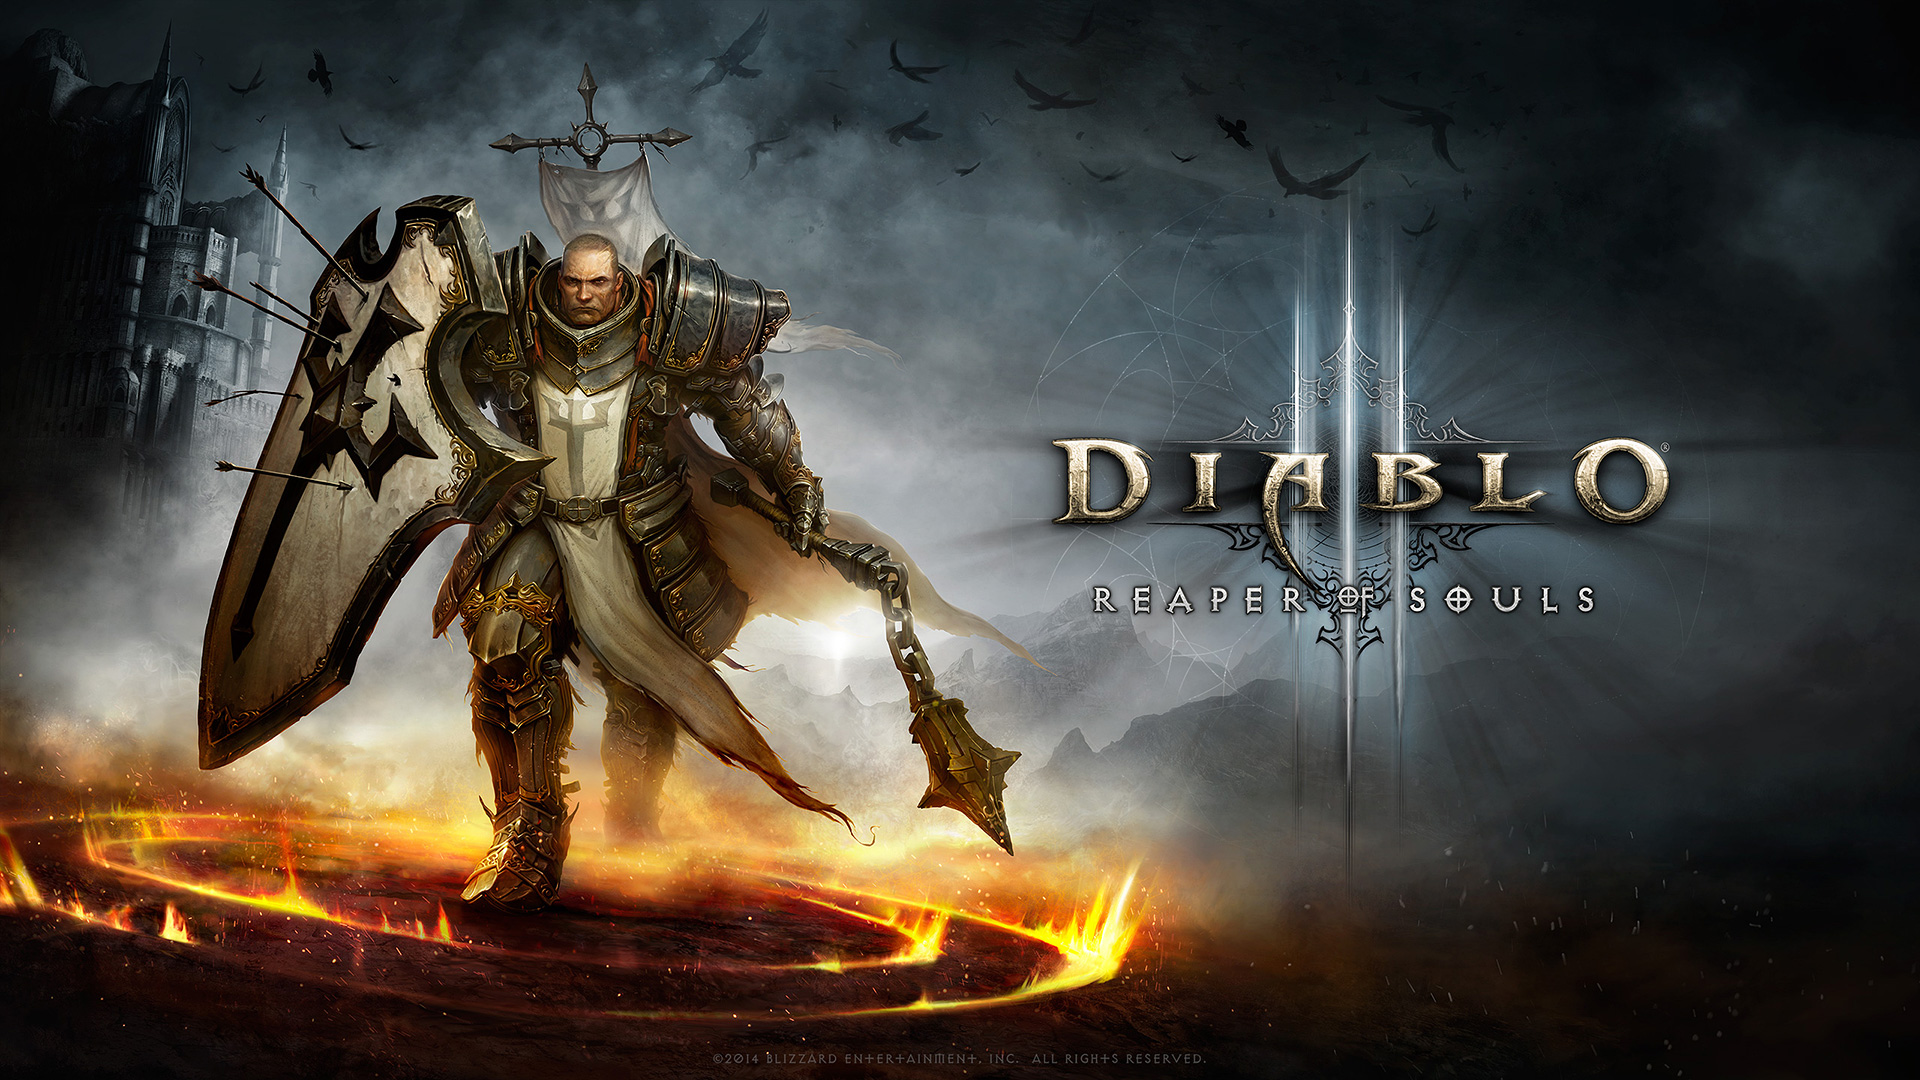 Wallpapers   Media   Diablo III 1920x1080